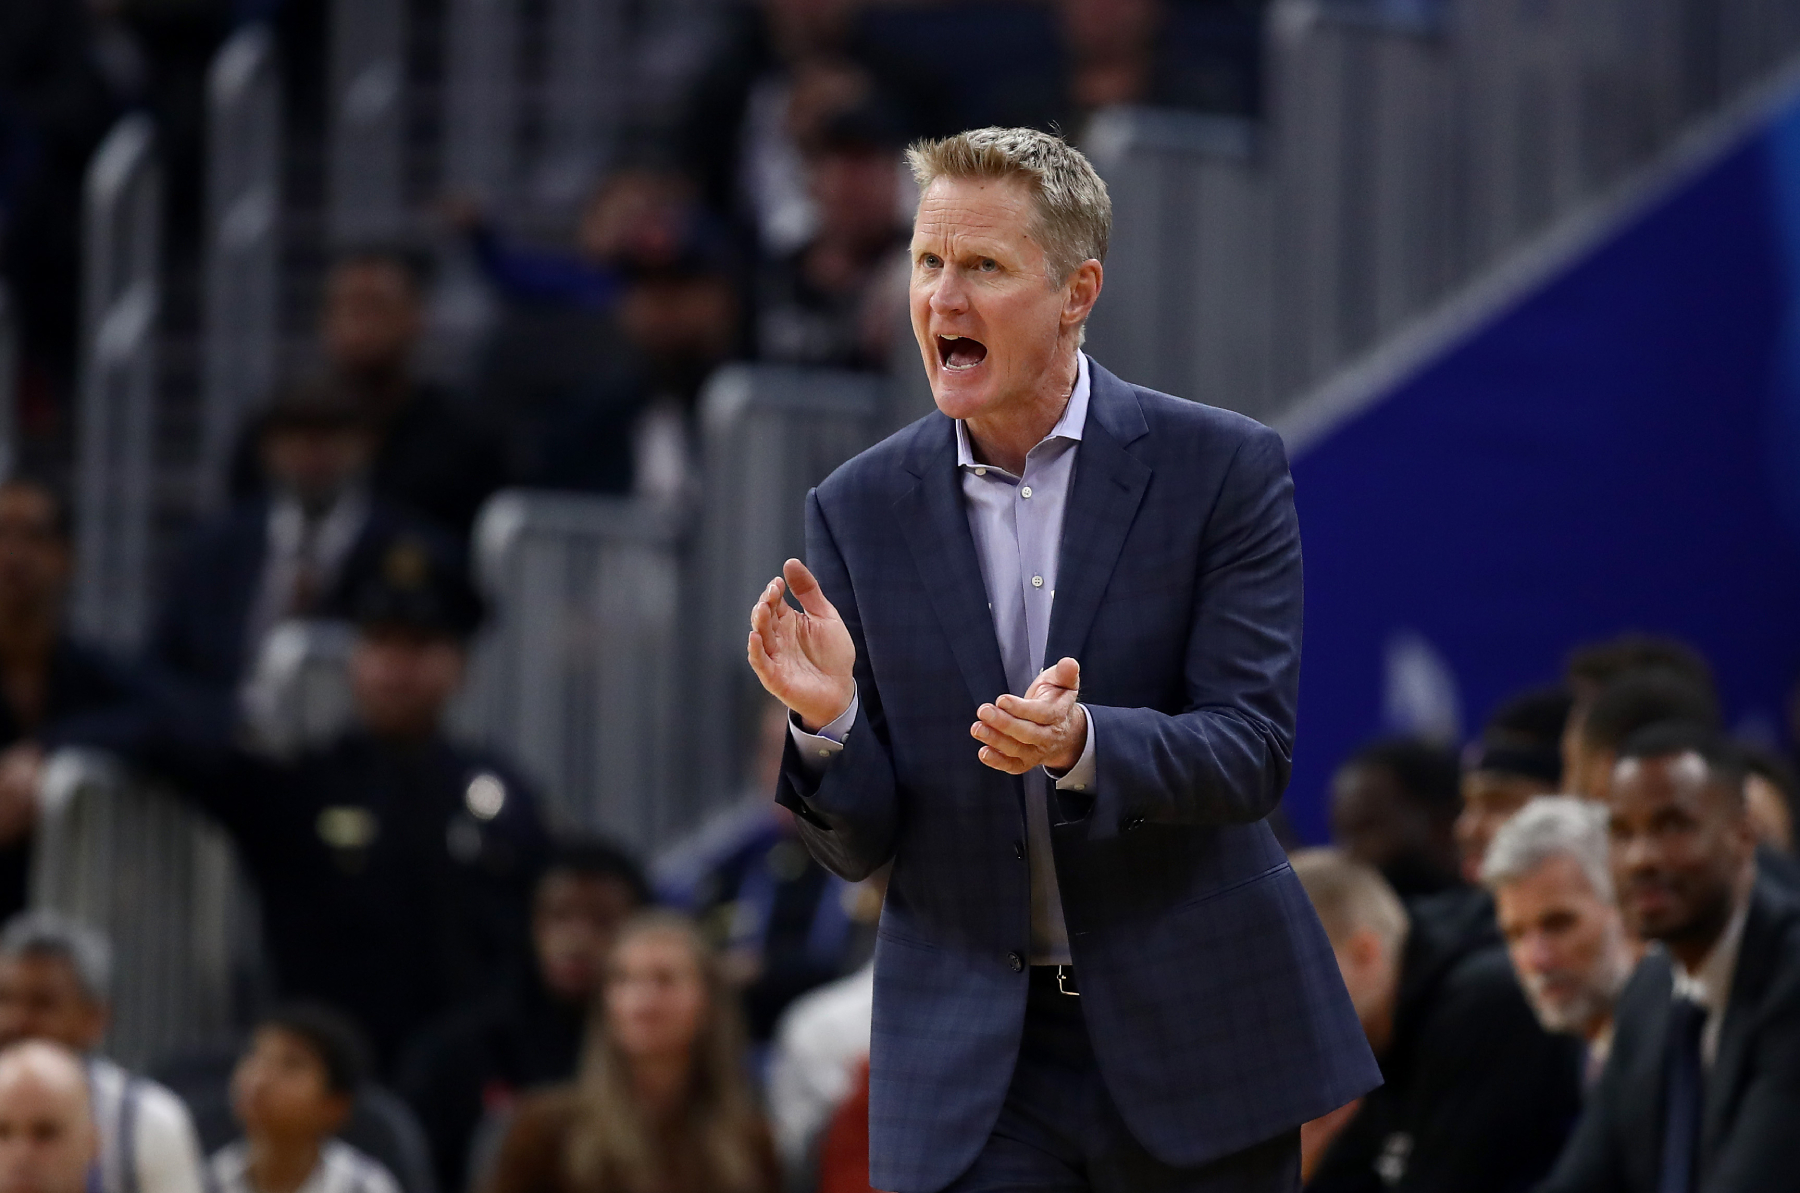 The Golden State Warriors hope to be atop the NBA again in 2020-21. Head coach Steve Kerr recently revealed his plan for them.